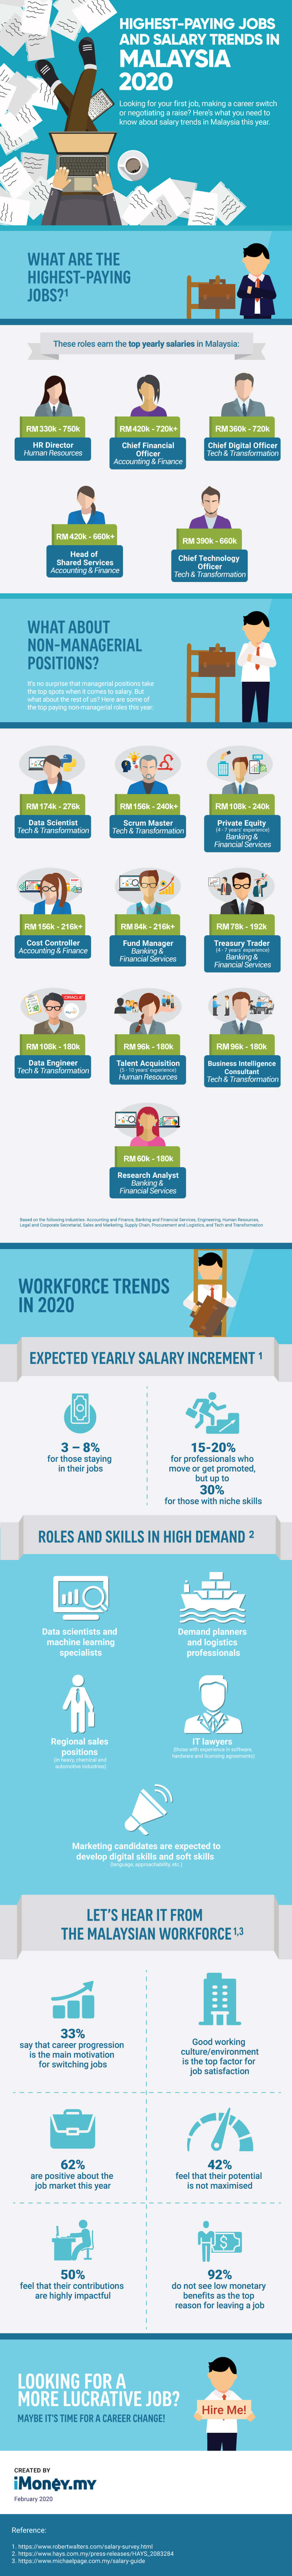 The Highest Paying Jobs In Malaysia In 2020